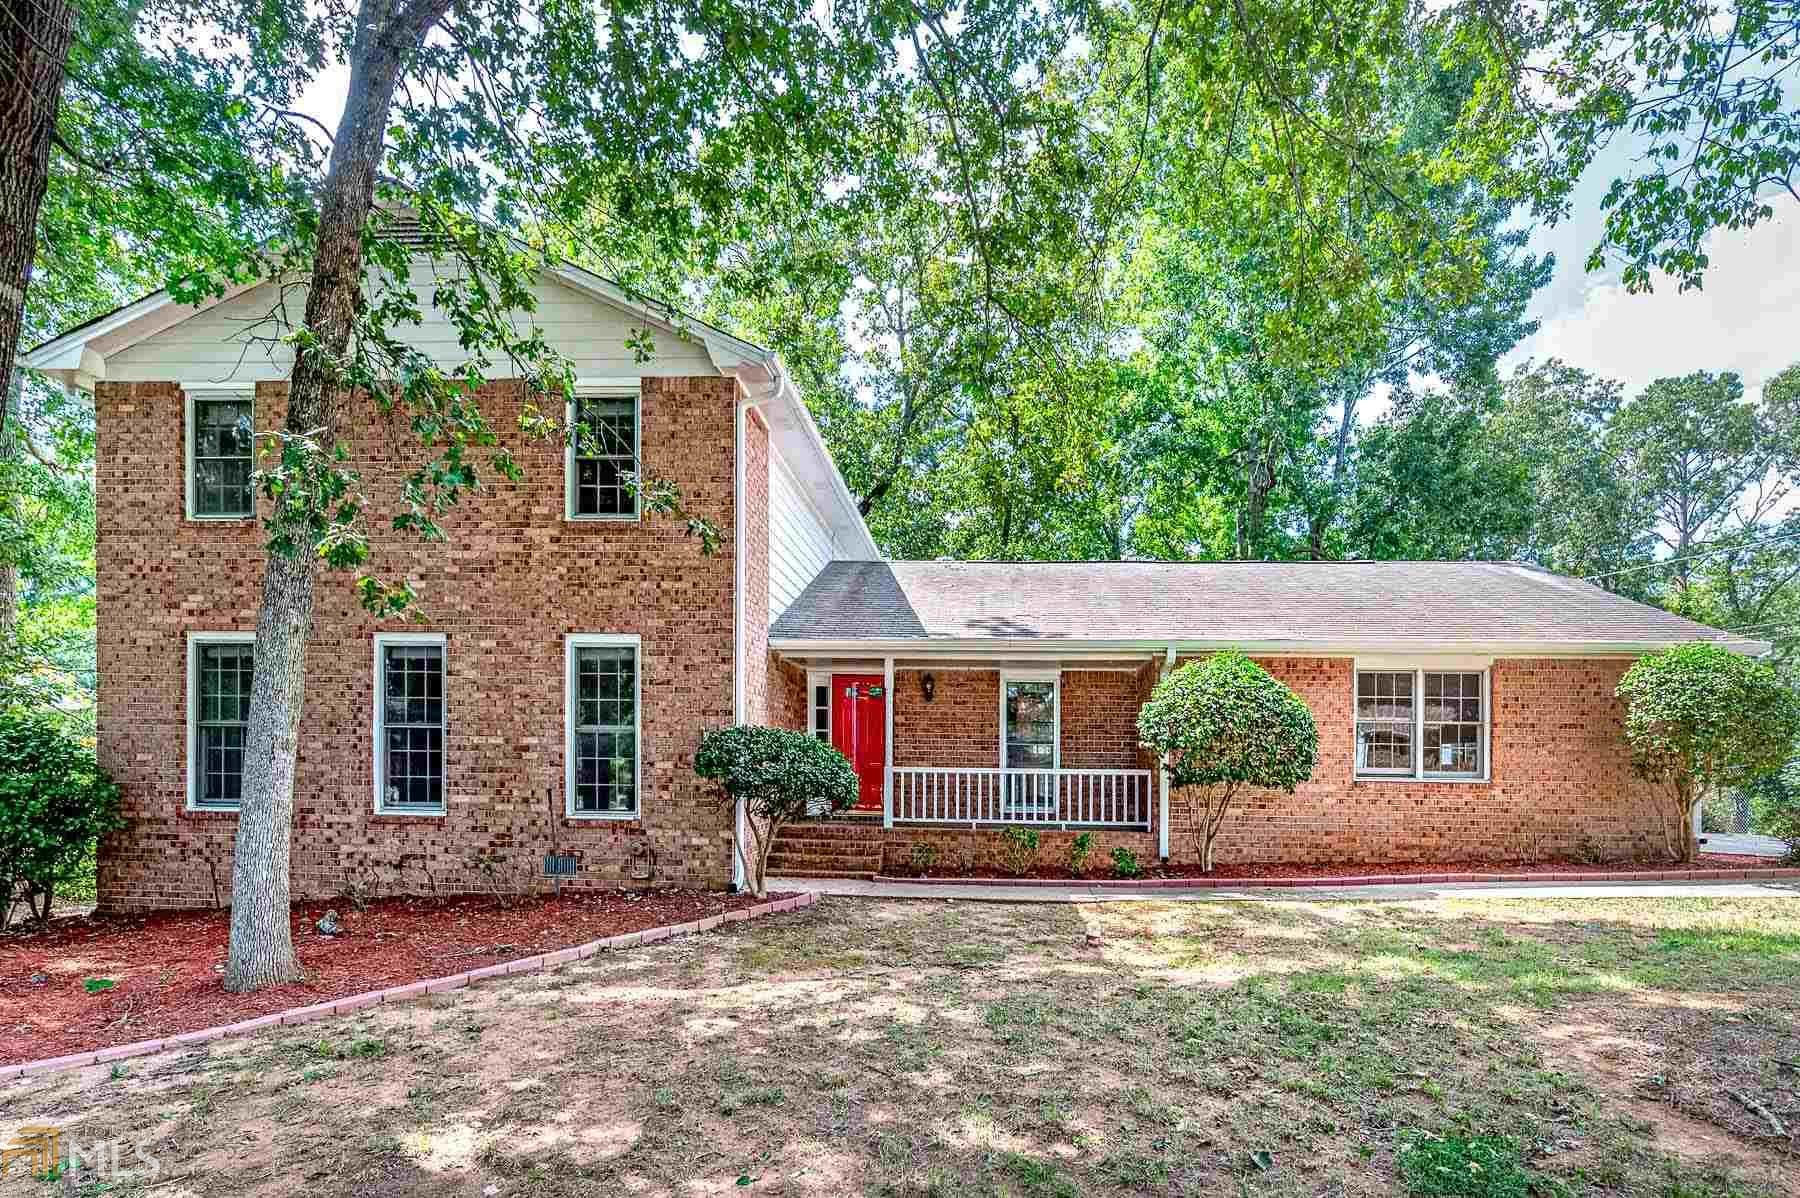 2571 Highland Golf Course Dr, Conyers, GA 30013 - #: 8827598